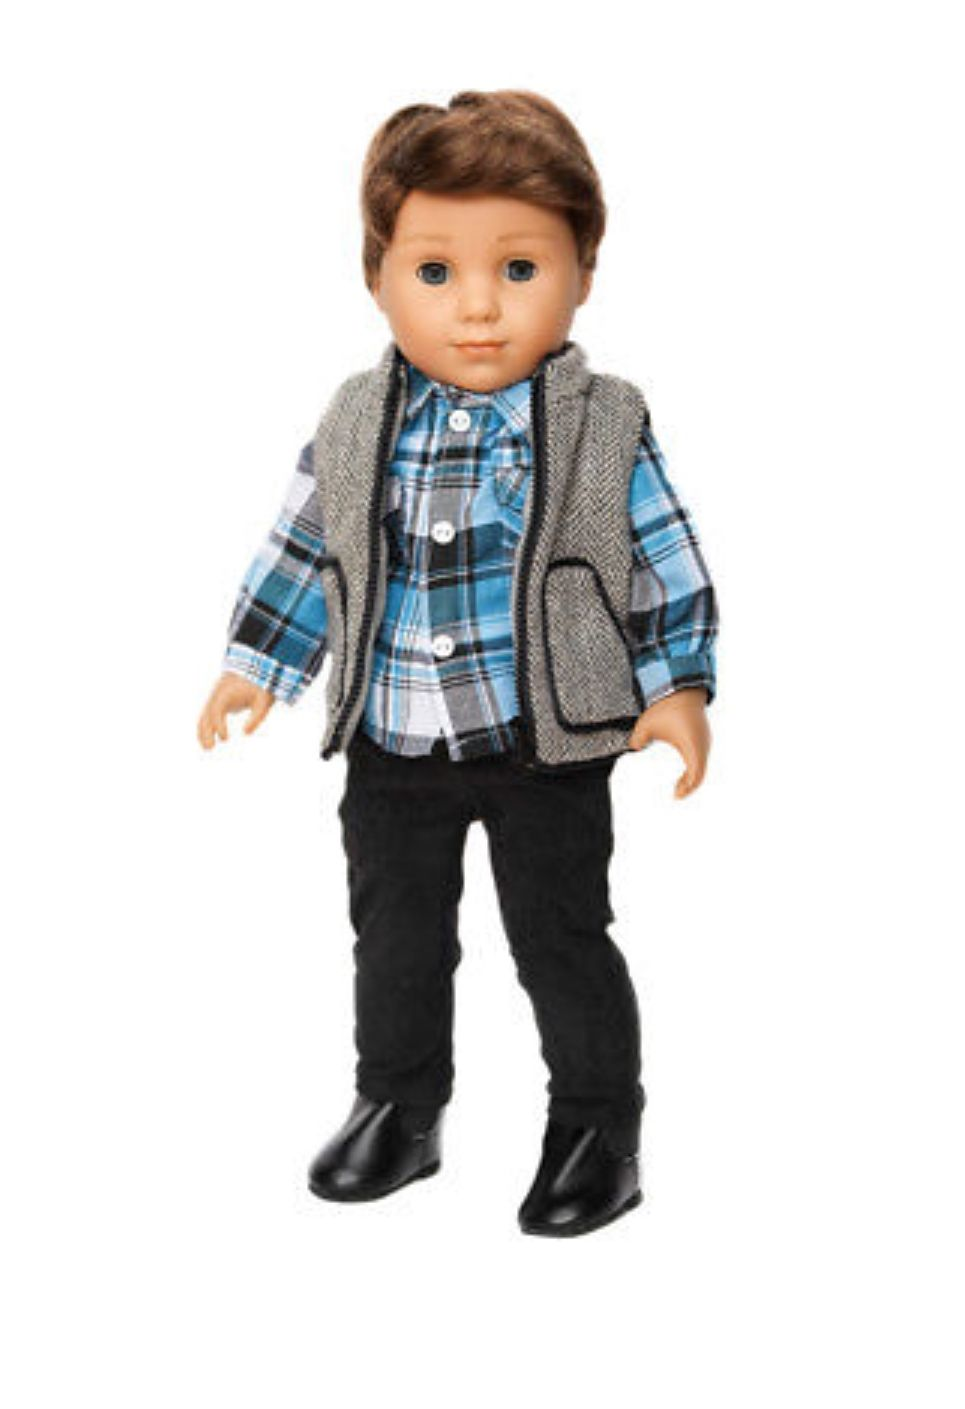 Pin on American Boy Doll Clothes - 18 inch Boy Outfits